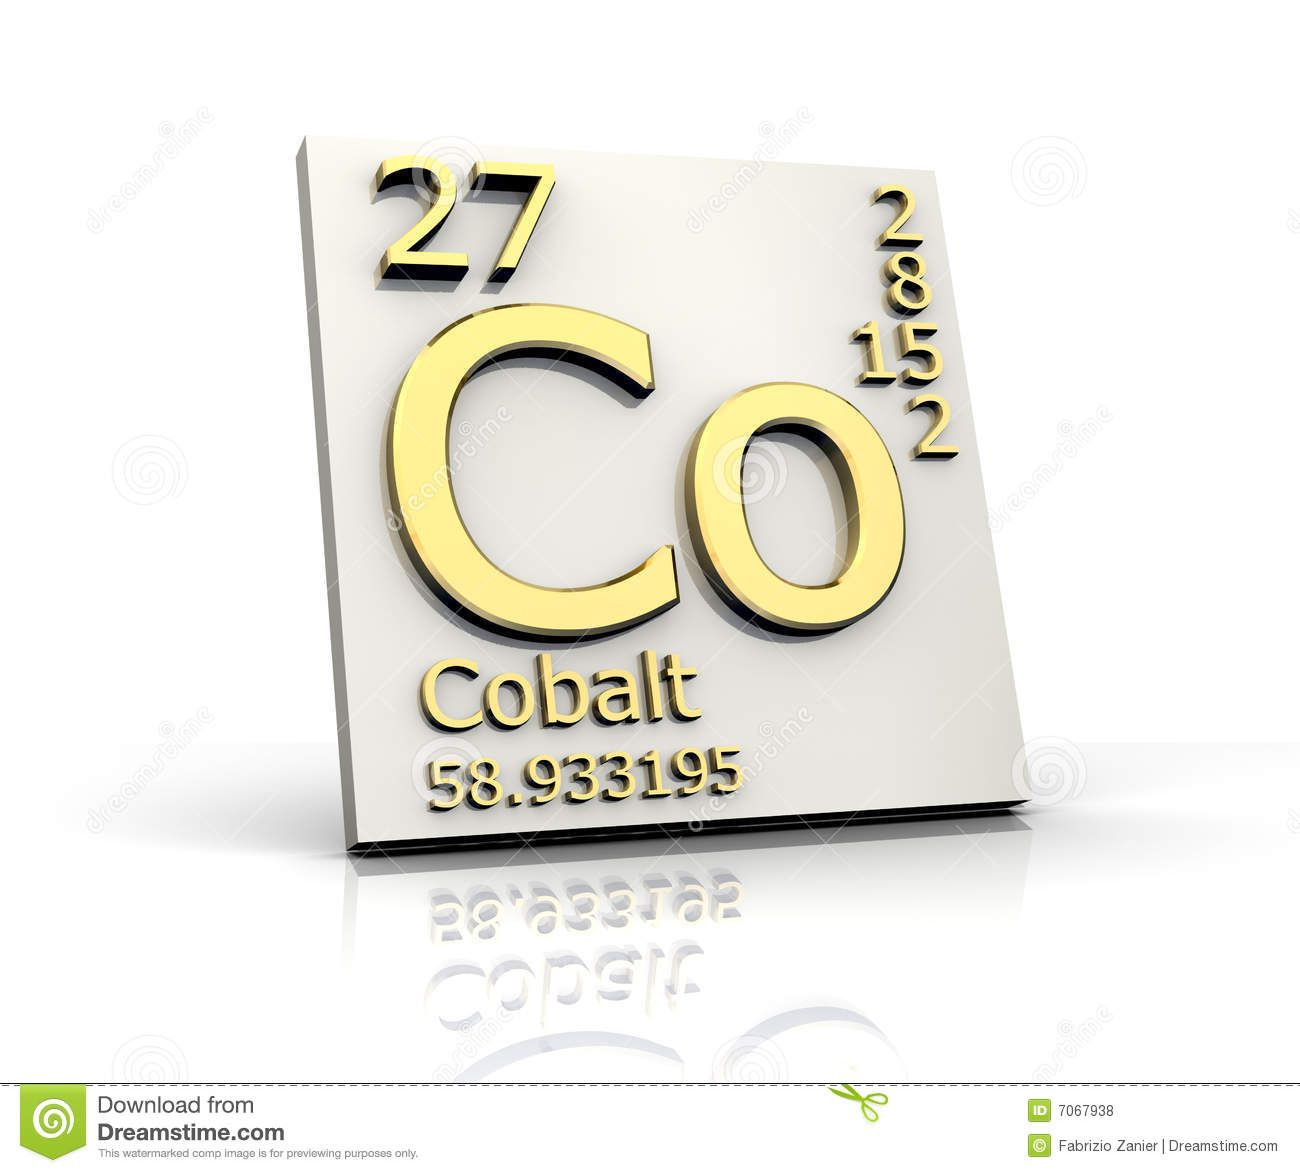 Cobalt elements from a to zinc pinterest periodic table and cobalt explore atomic number royalty free stock photos and more buycottarizona Gallery